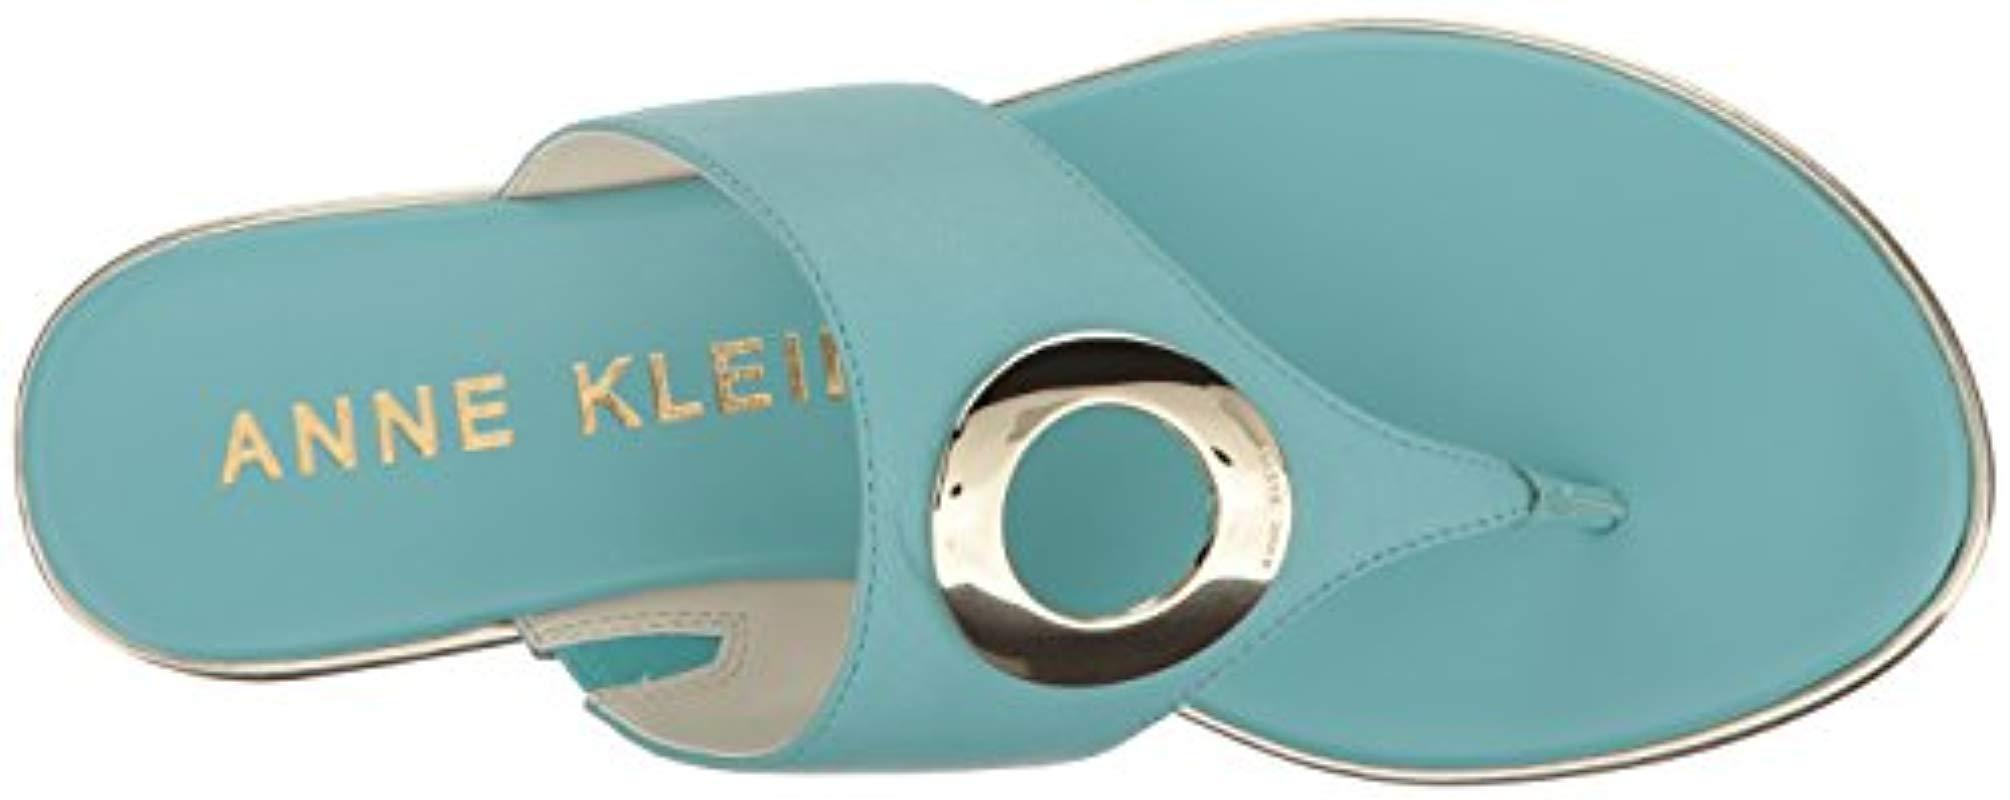 Anne Klein Gia Leather Flip Flop In Turquoise Blue Lyst